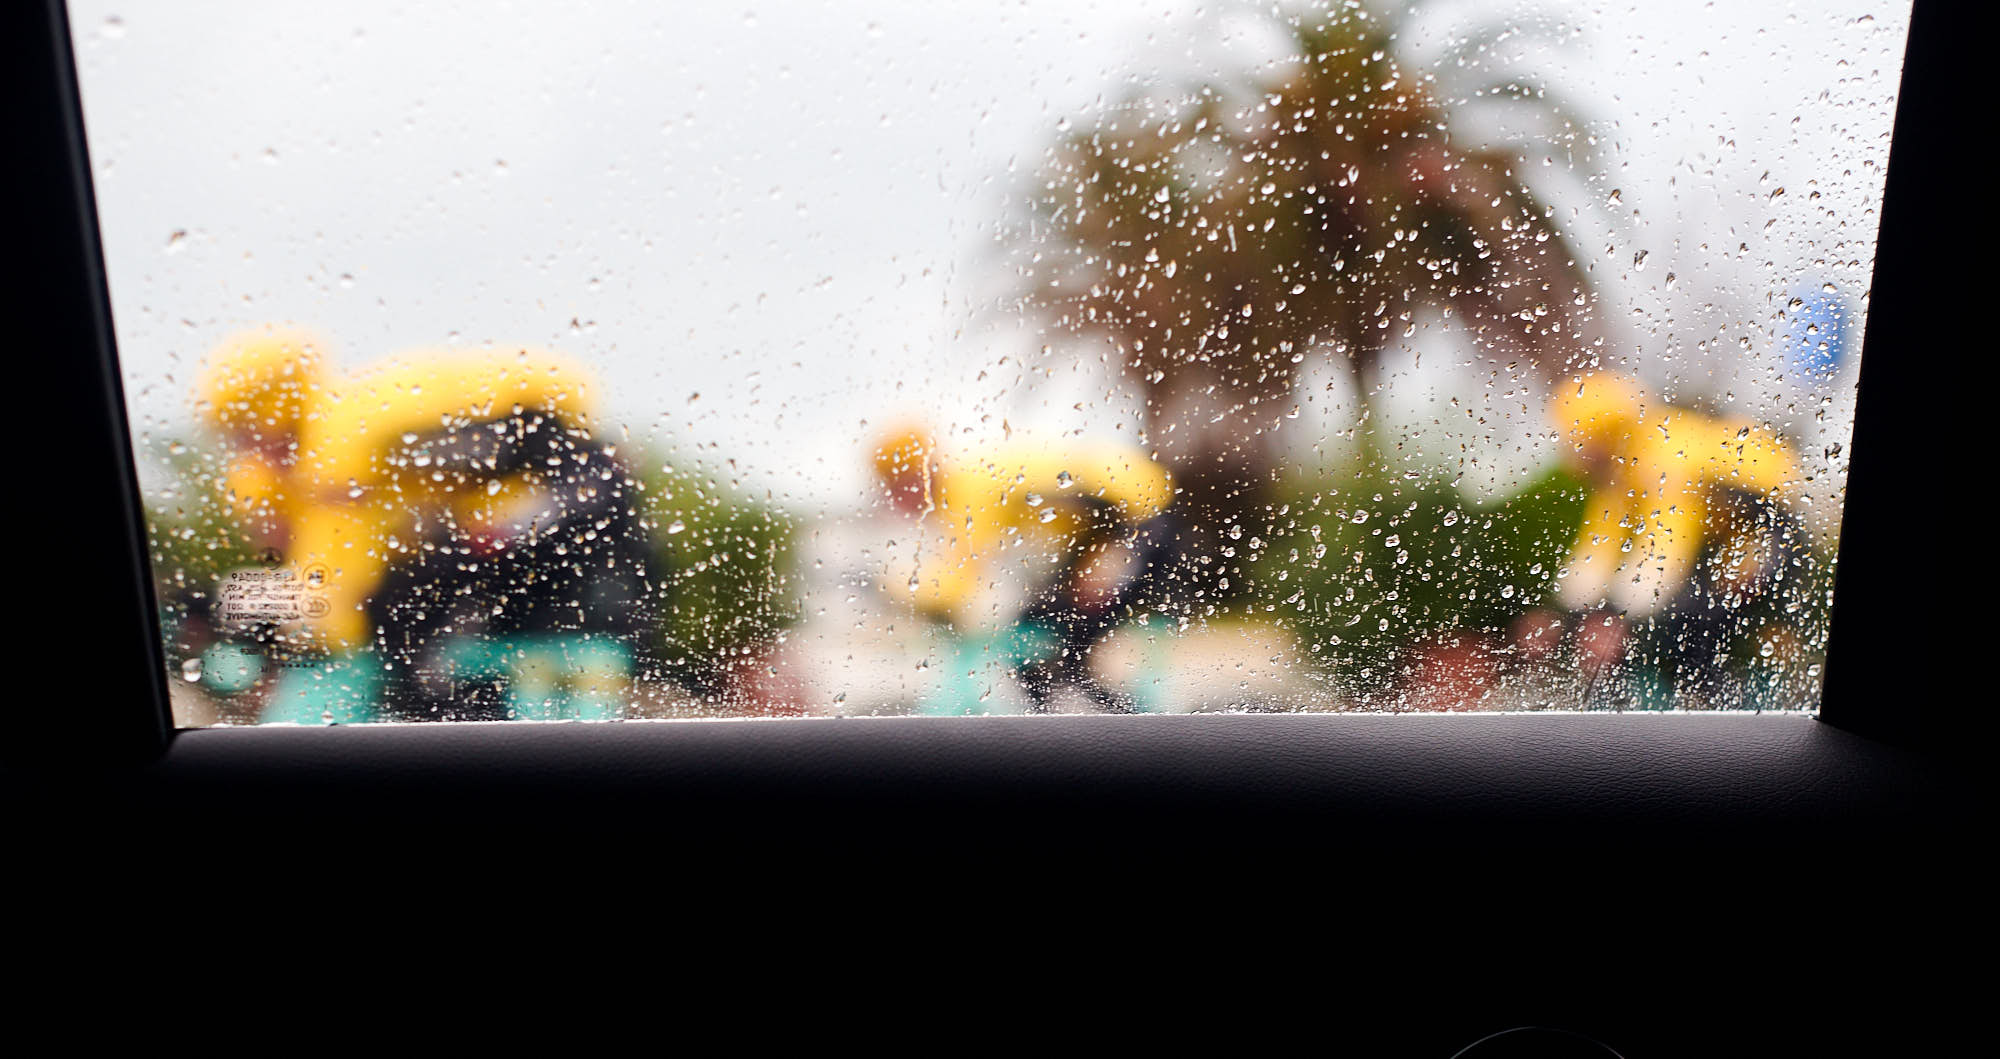 Rainy car window with cyclists